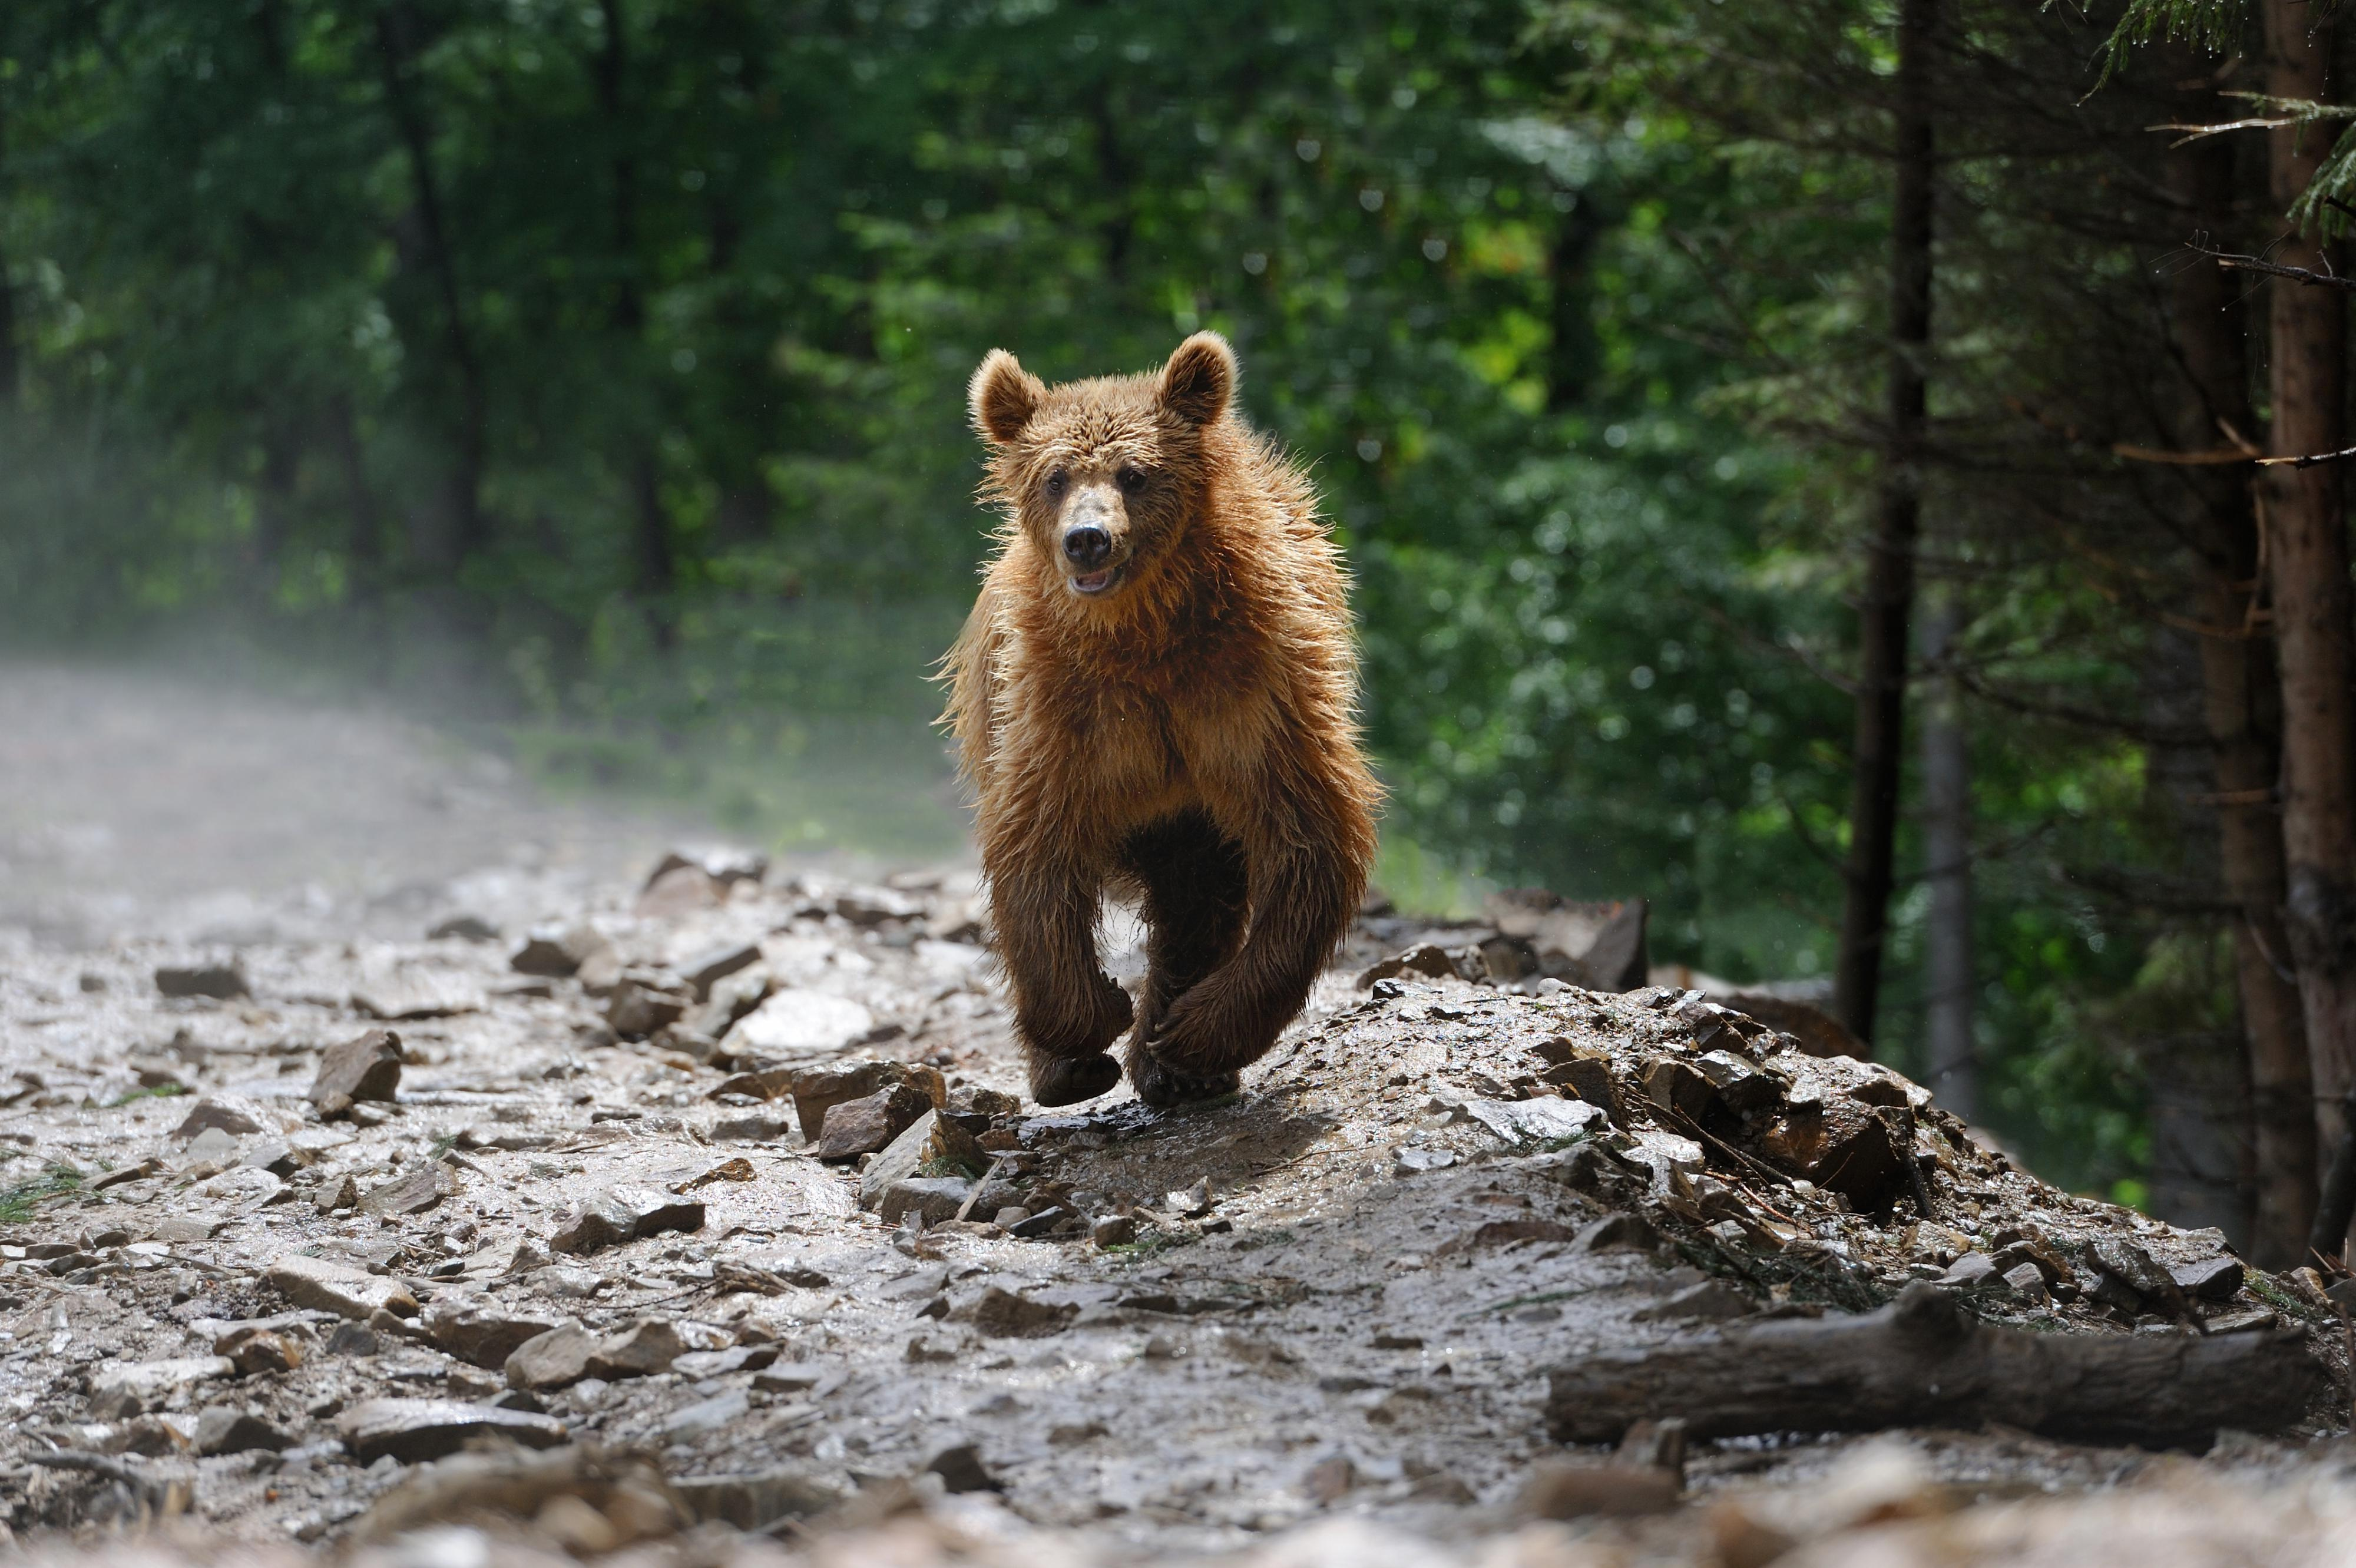 Bears are big and heavy even though they can run very fast.